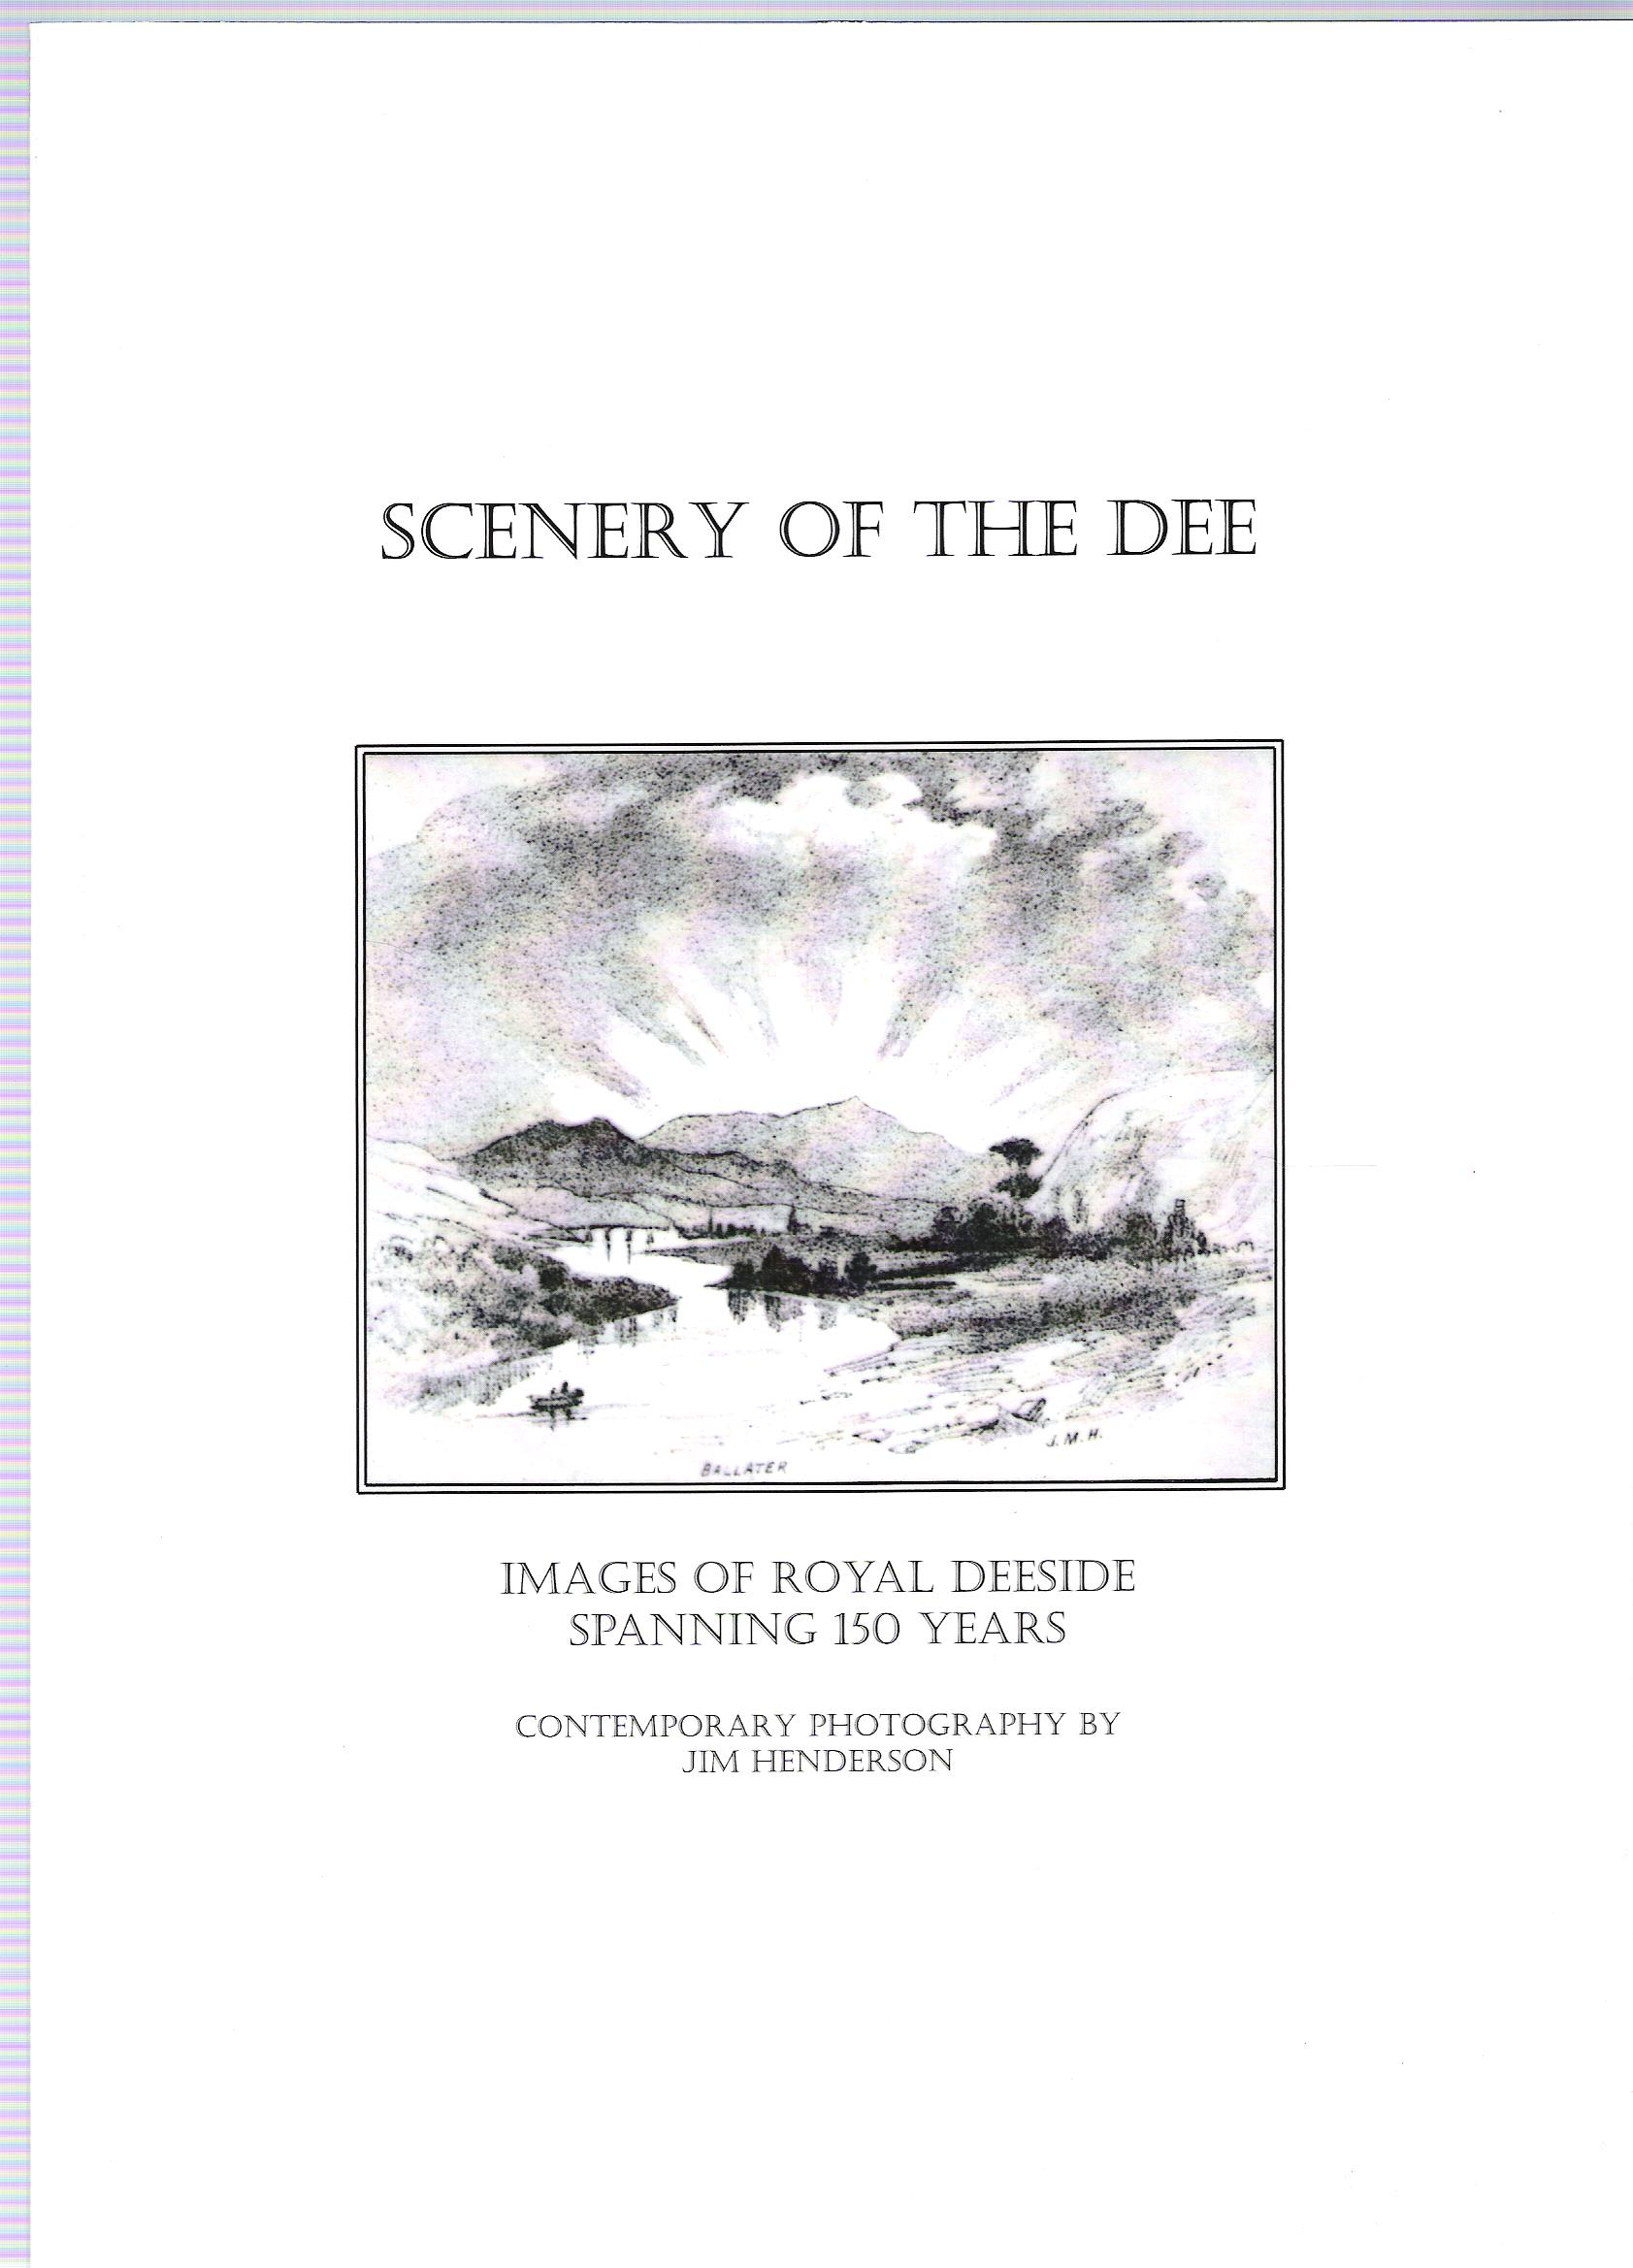 Image for Scenery of the Dee: A Study of the Dee Valley from Drawings of the 1850's and Black & White Photographs Taken 150 Years Later.